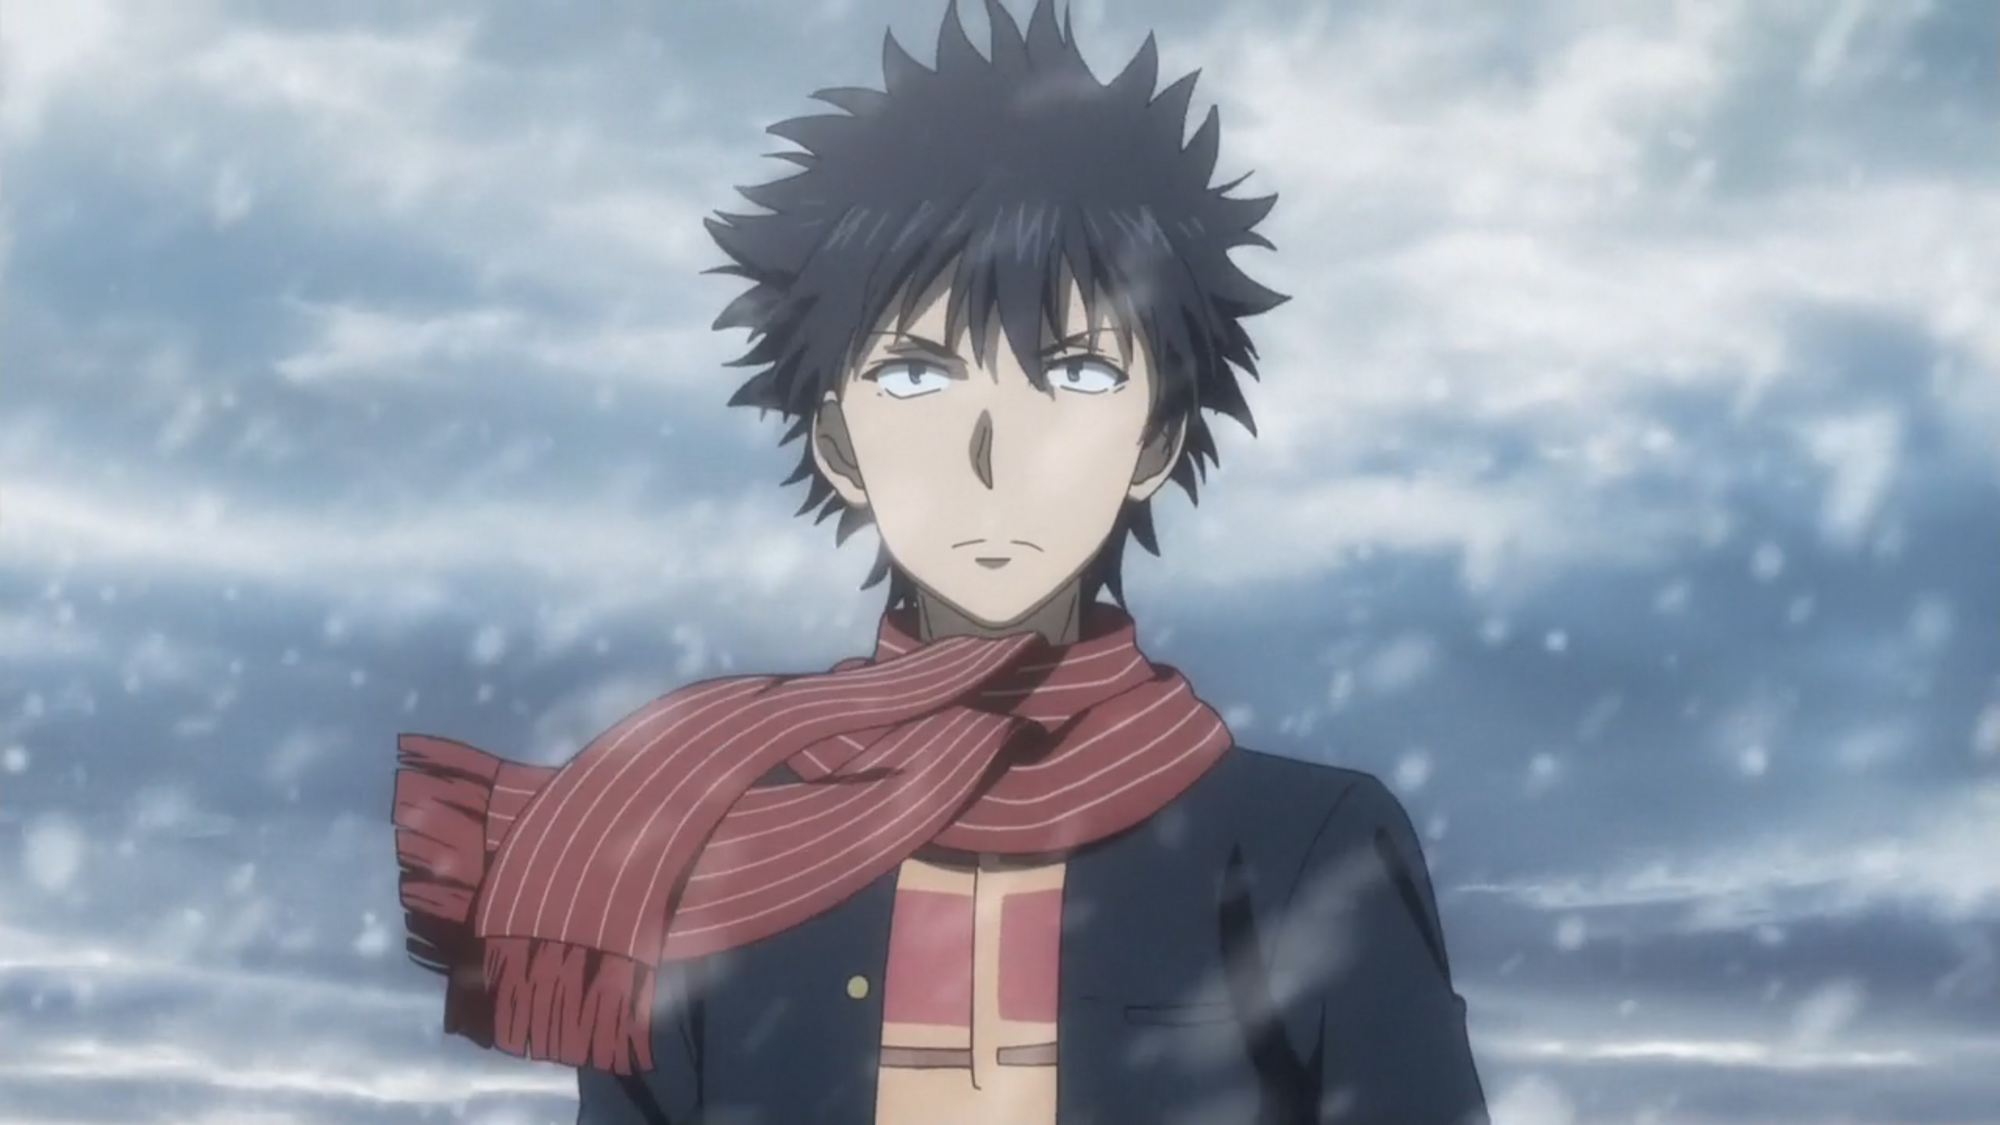 Kamijou Touma/Personality and Relationships | Toaru Majutsu no Index